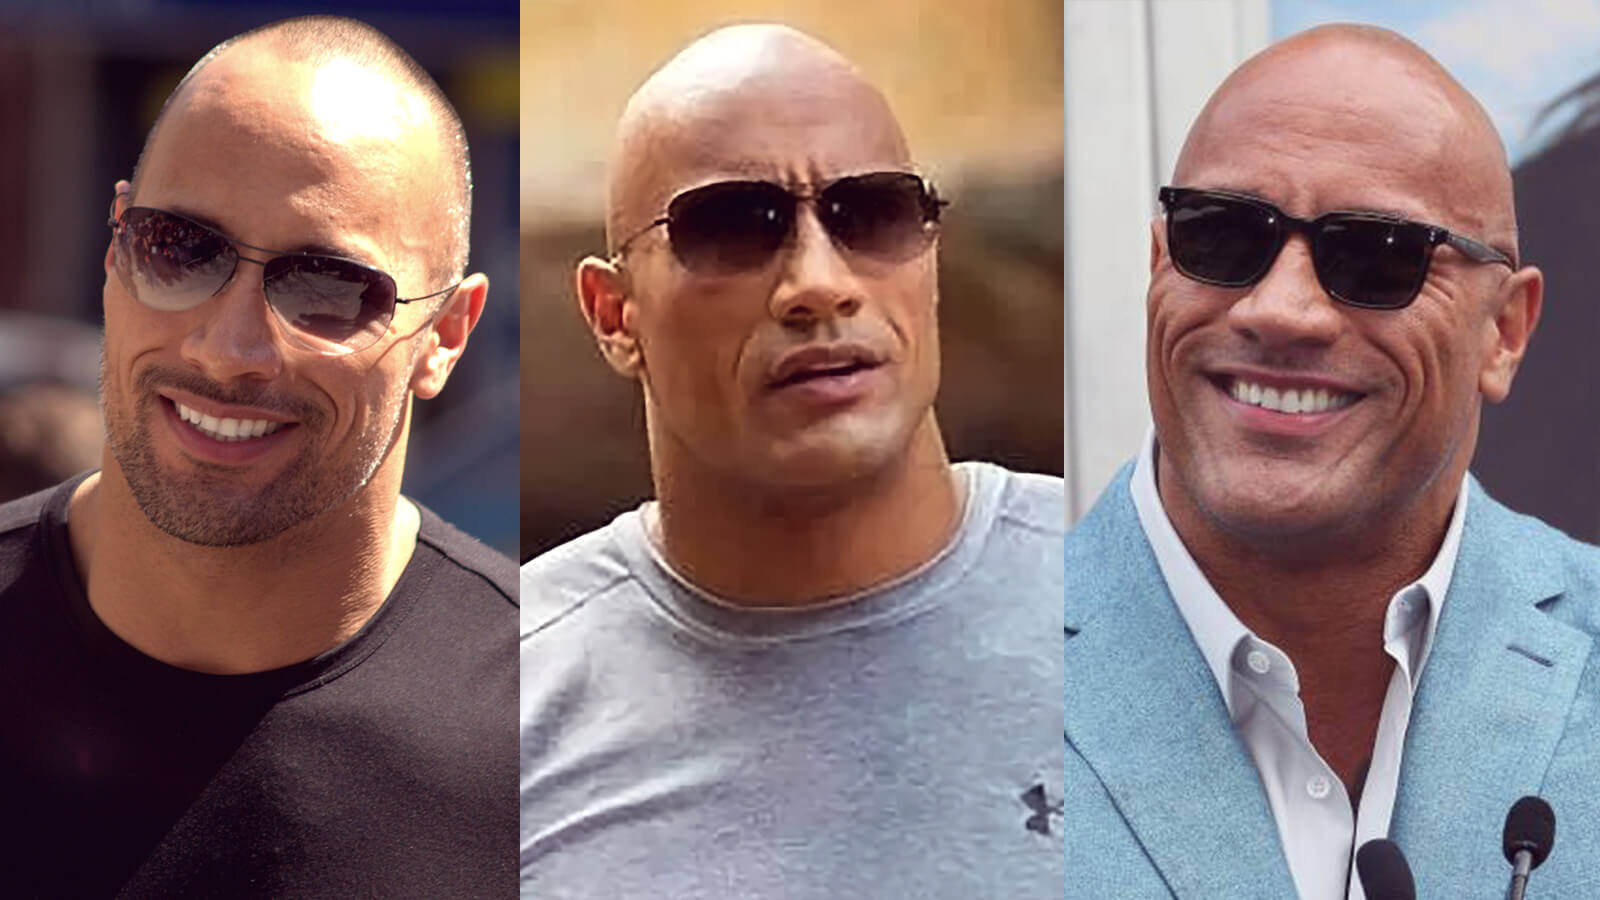 Rock Your Dwayne Johnson Sunglasses Just Like 'The Rock'